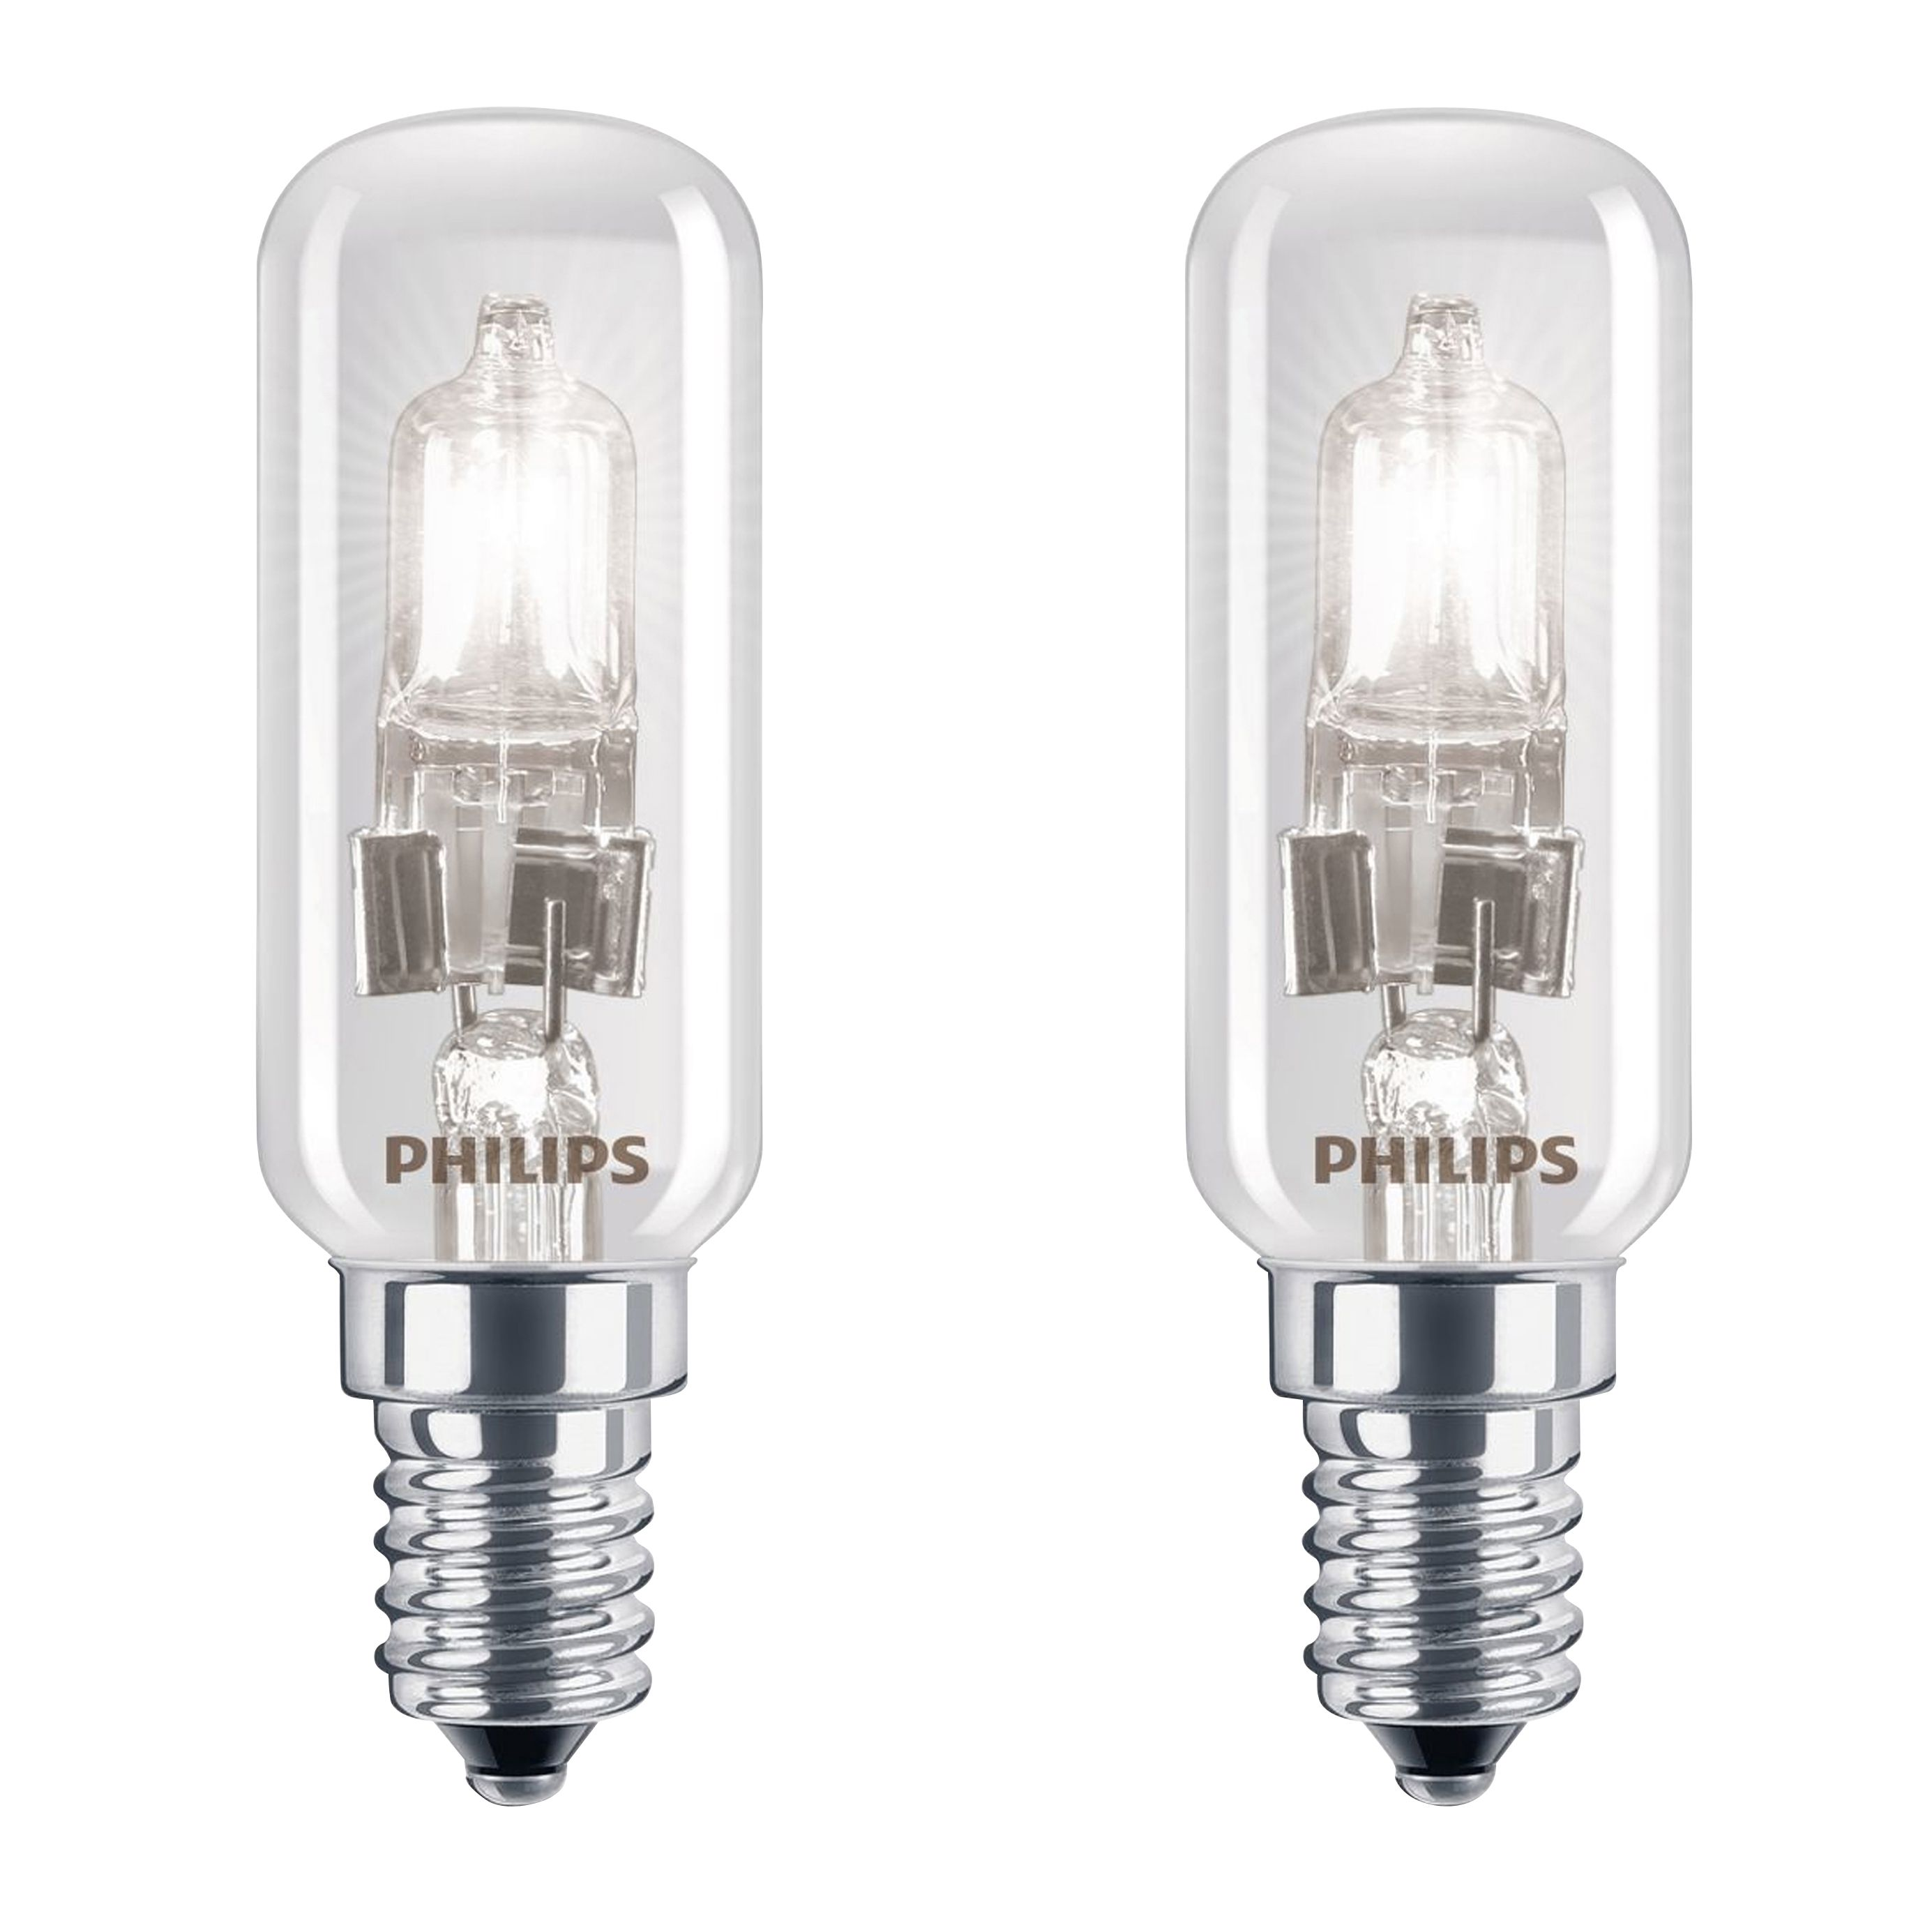 Philips E14 28W Halogen Dimmable Appliance Light Bulb